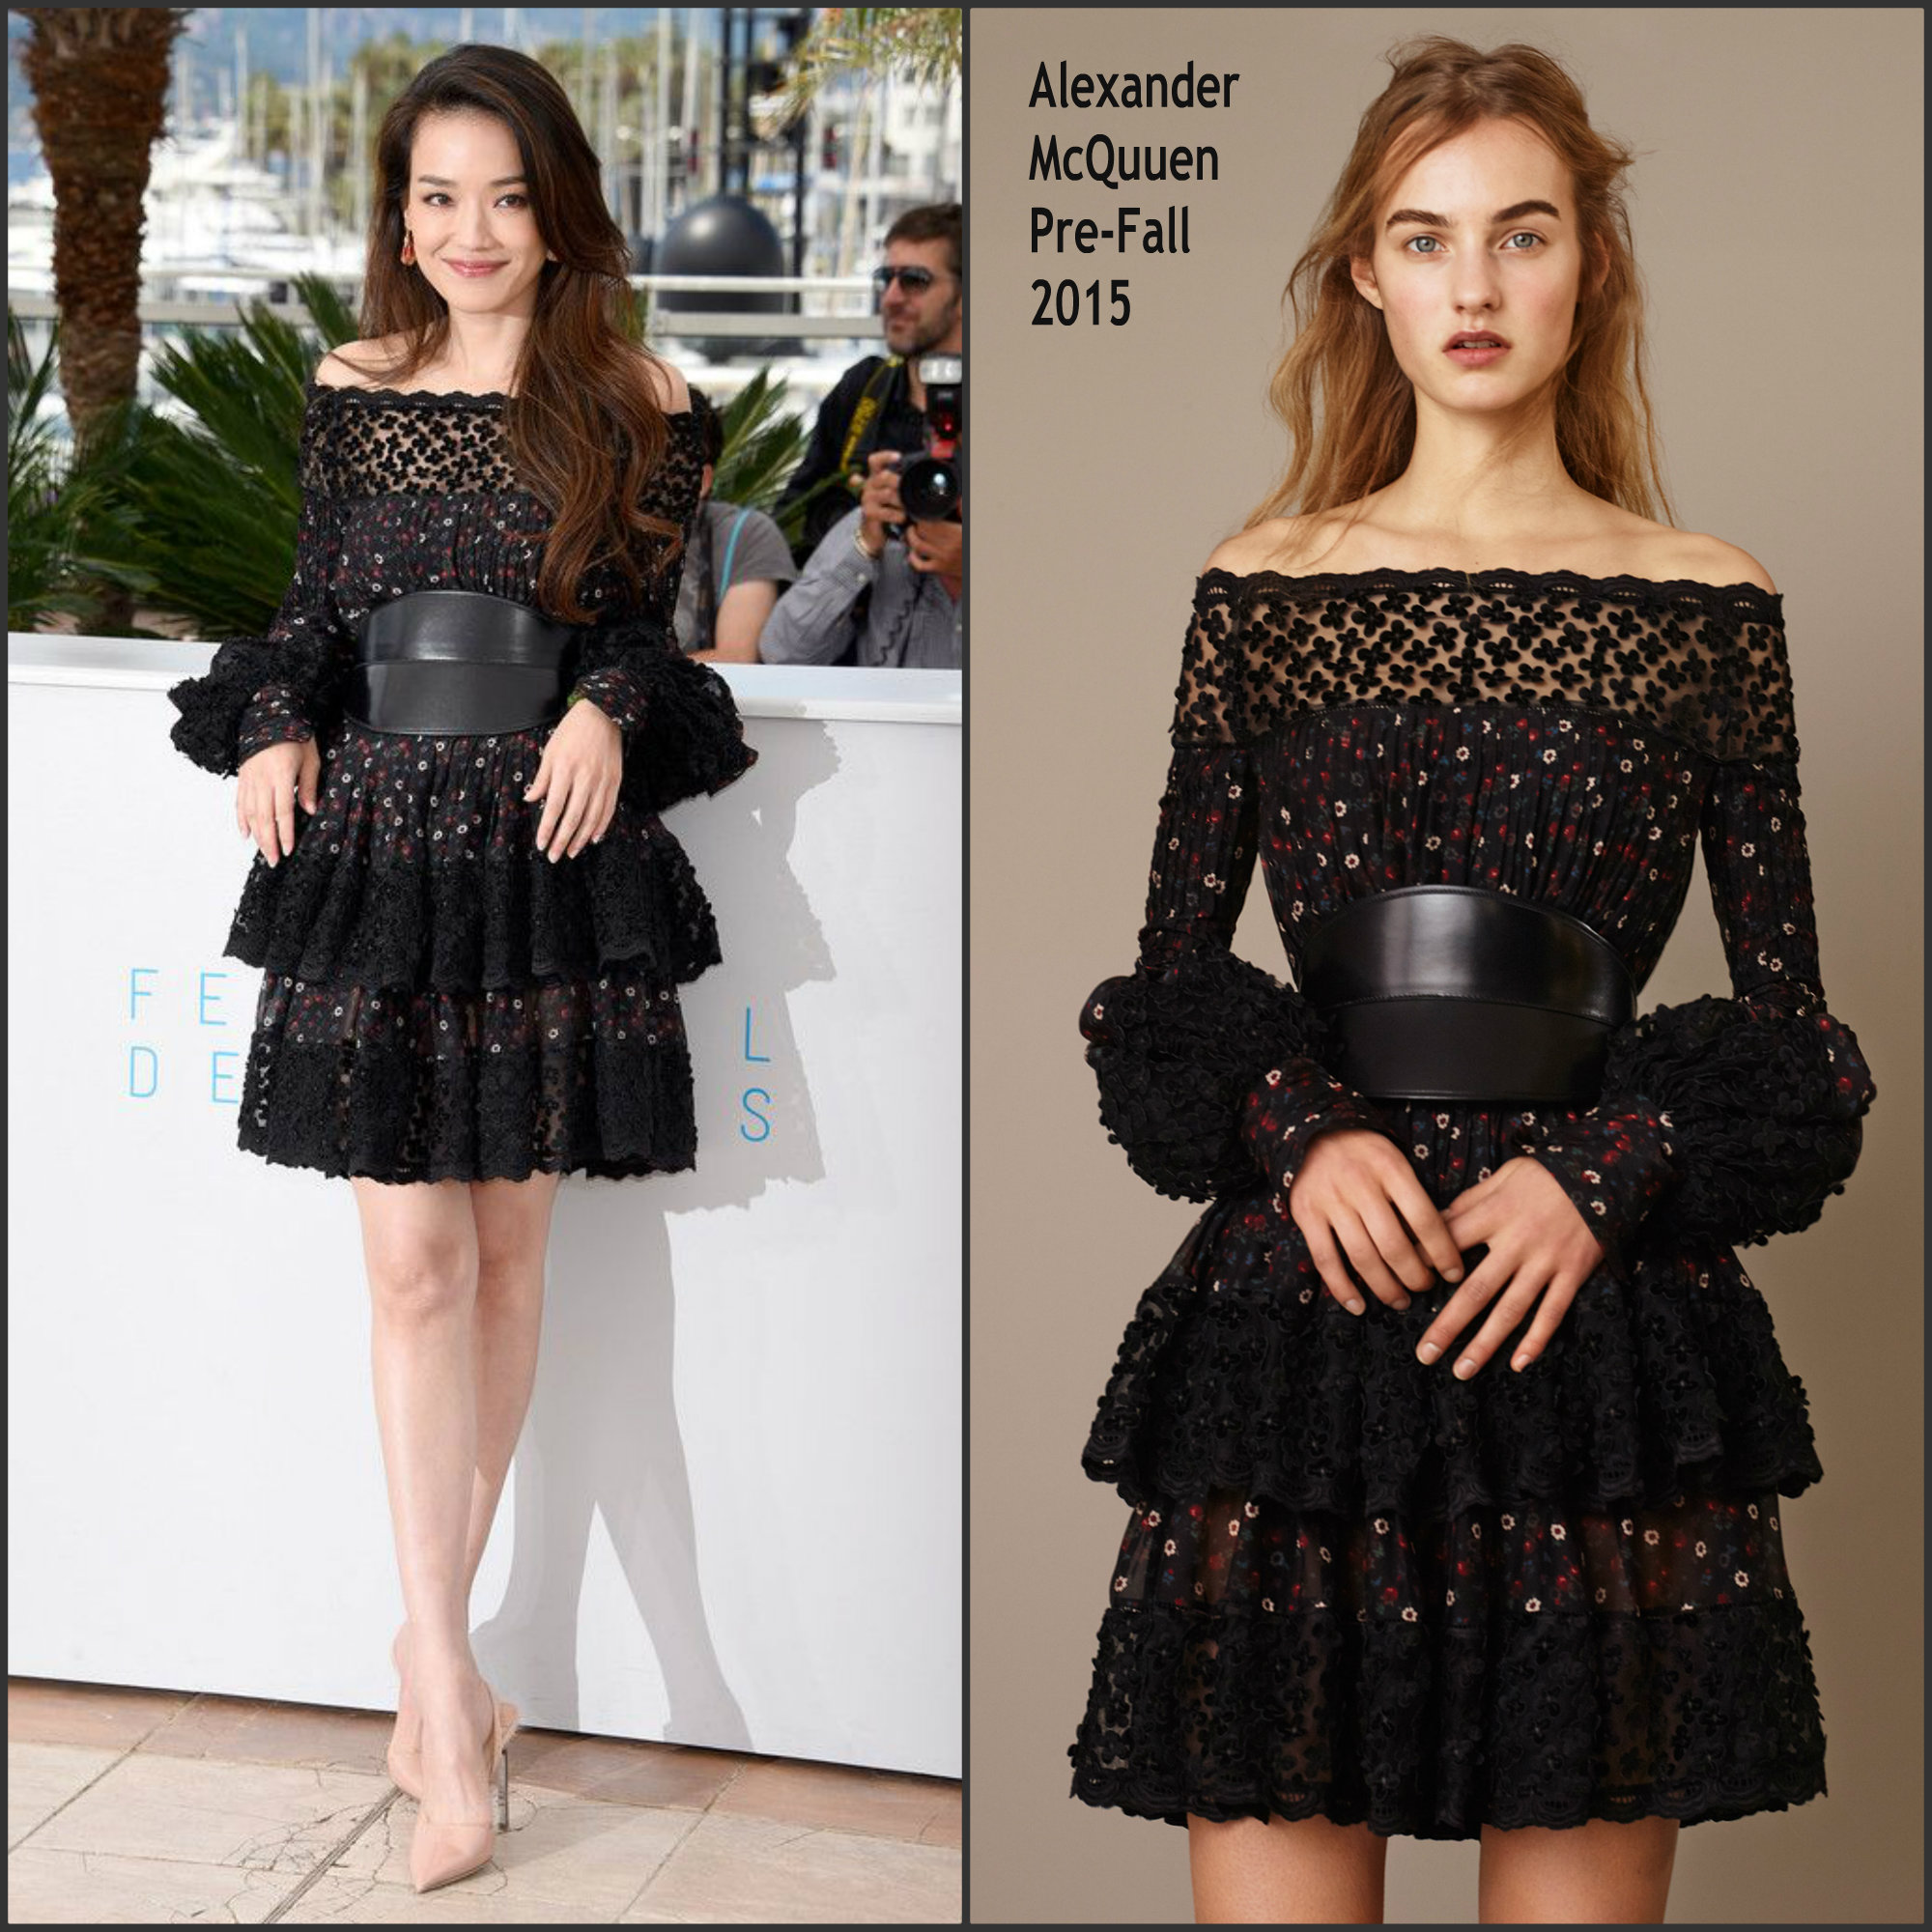 shu-qi-in-alexander-mcqueen-at-the-nie-yinniang-cannes-film-festival-photocall